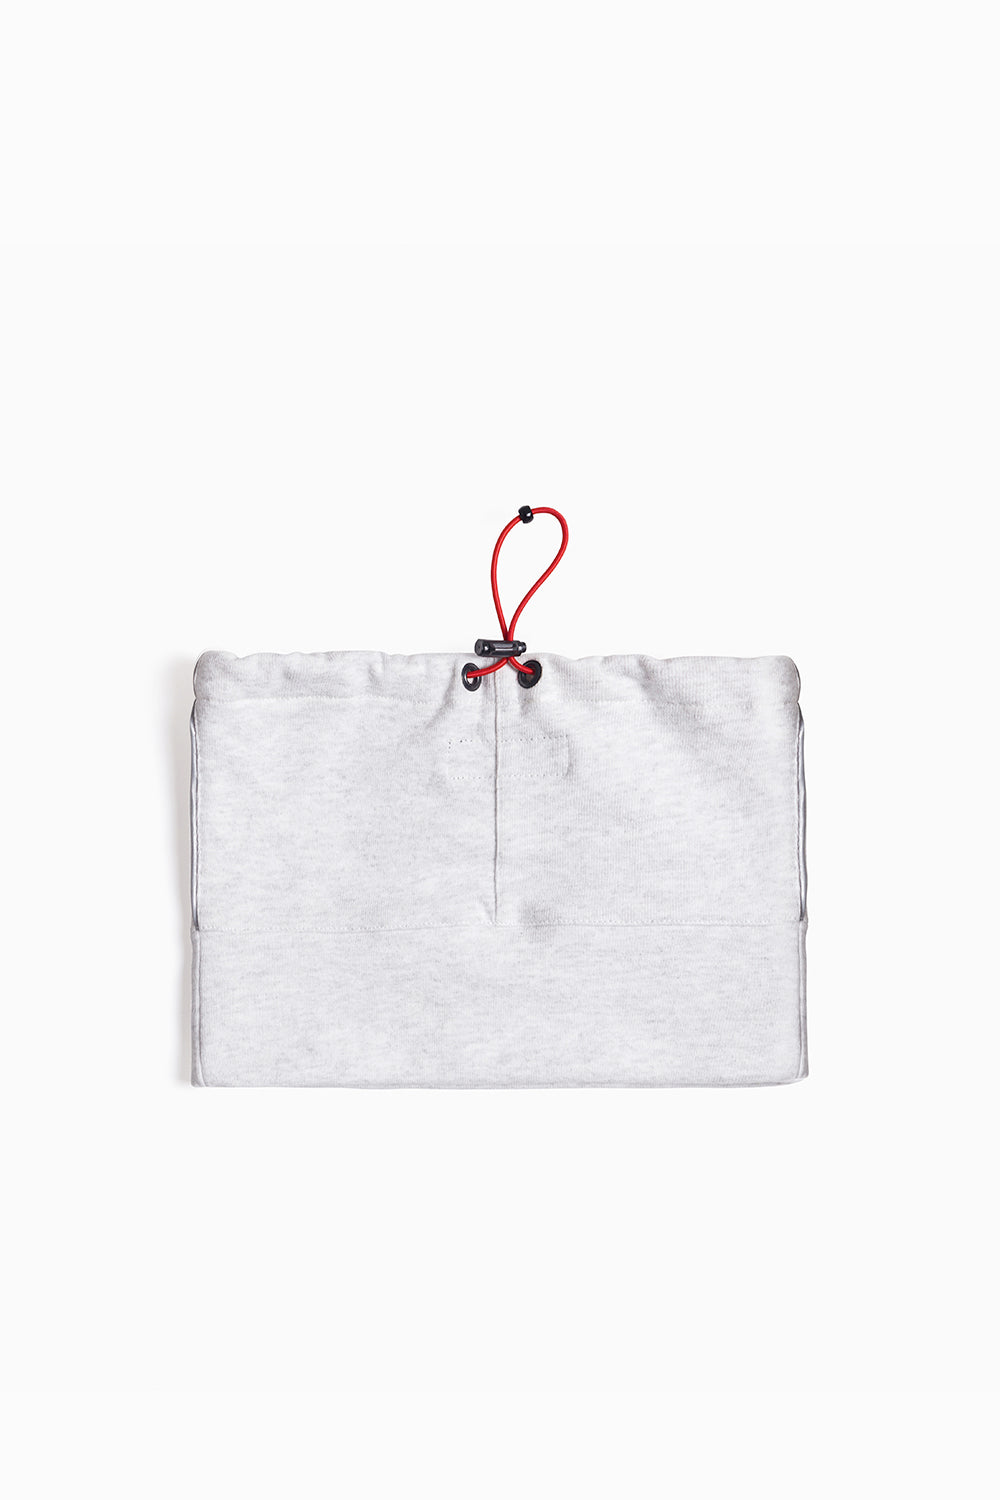 DP neck gaiter / ash heather grey